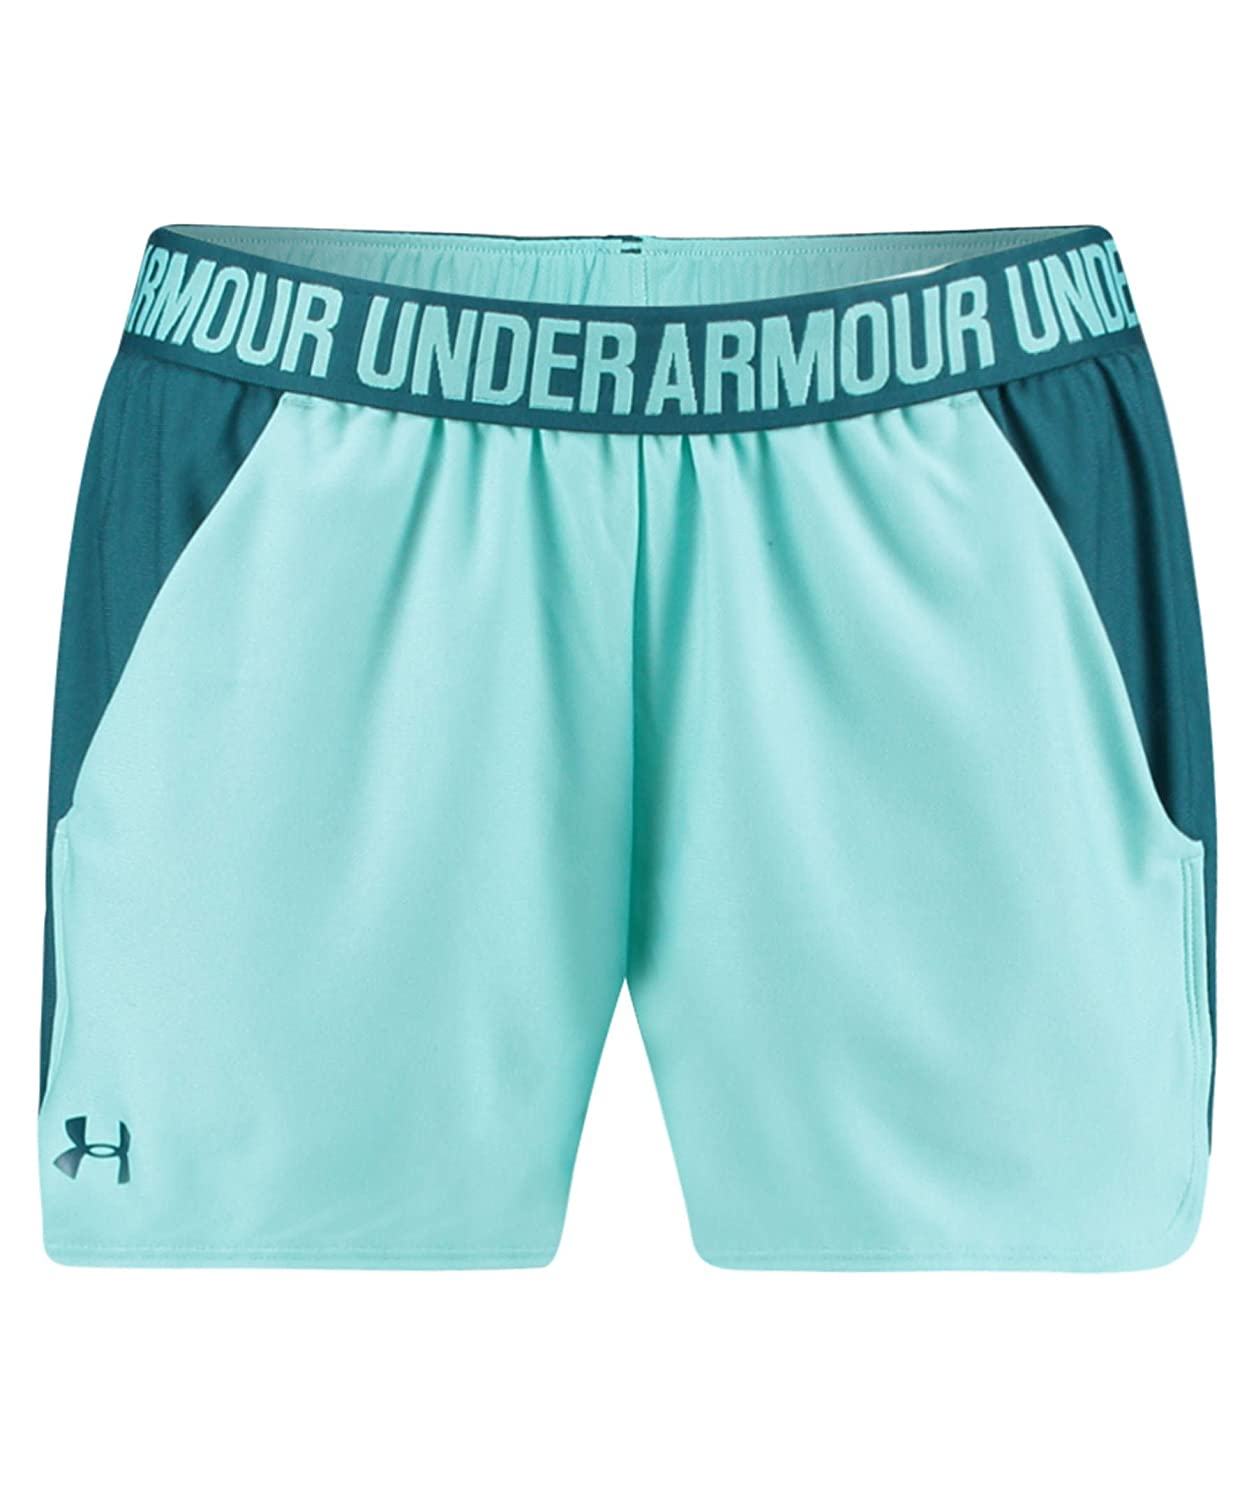 (アンダーアーマー) UNDER ARMOUR プレイアップショーツ(トレーニング/ショートパンツ/WOMEN)[1292231] B071L9DSDH X-Small|Tropical Tide/Tourmaline Teal Tropical Tide/Tourmaline Teal X-Small